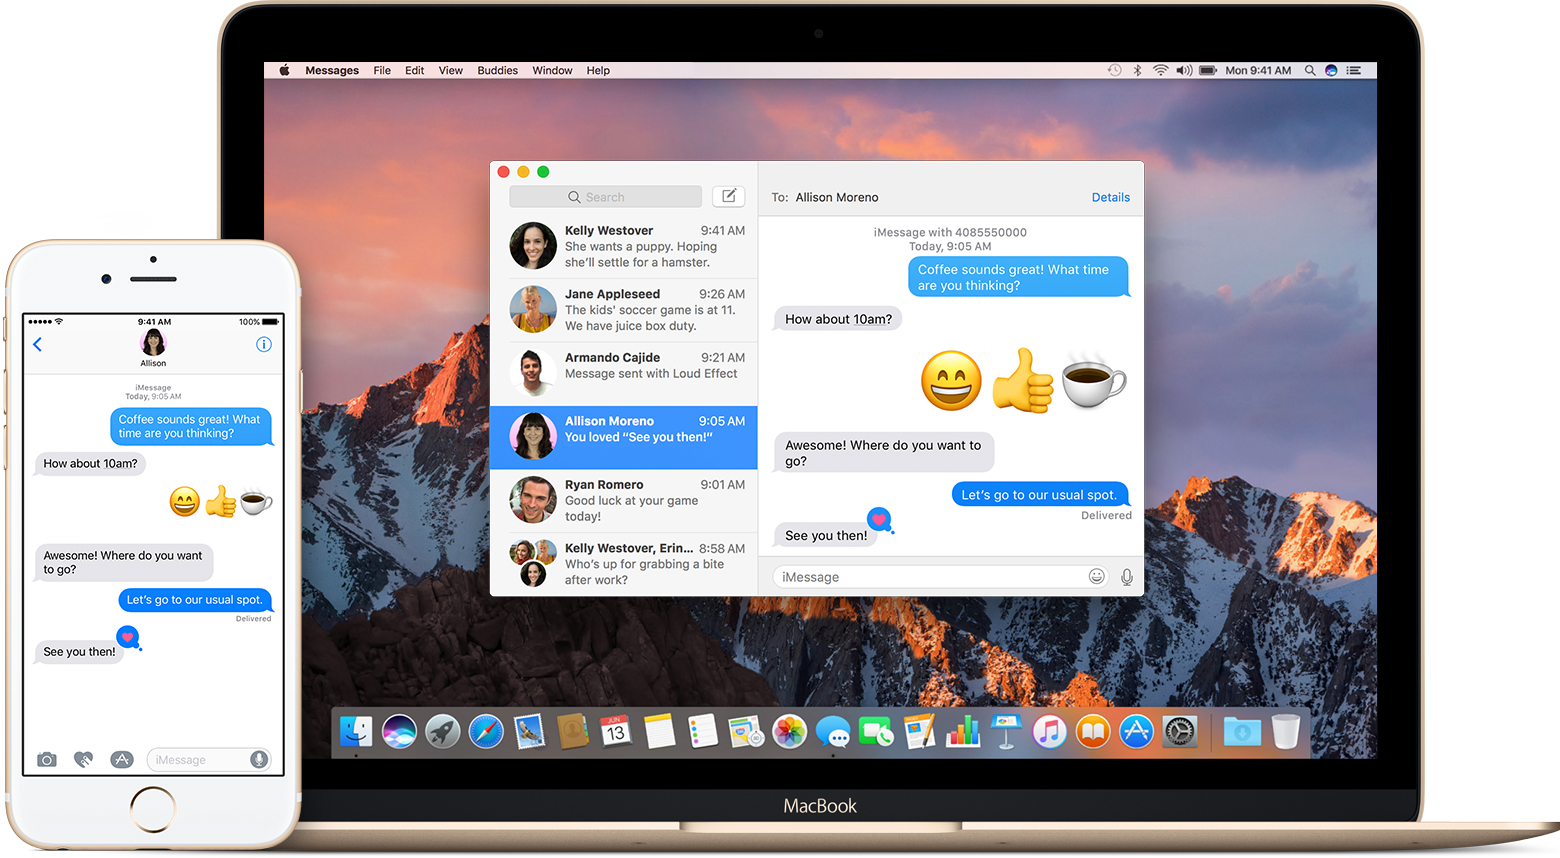 Apple's Move Start to Pay Back: iMessage Economy